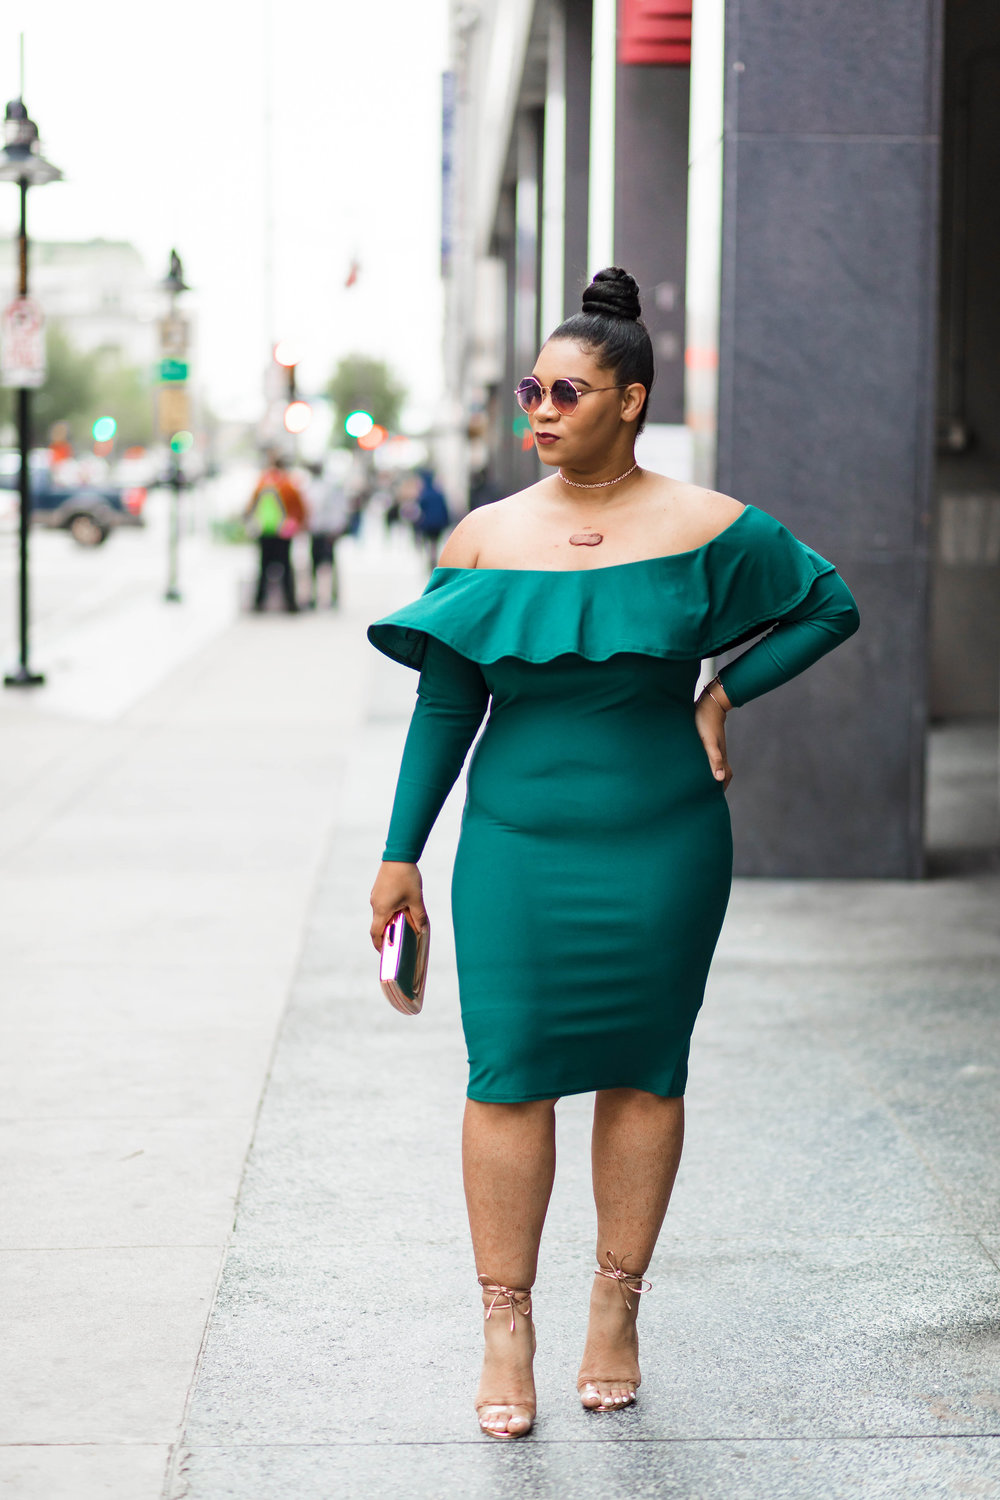 Leaned on Green: Ruffled Off-the-Shoulder Dress + Rose Gold Accessories